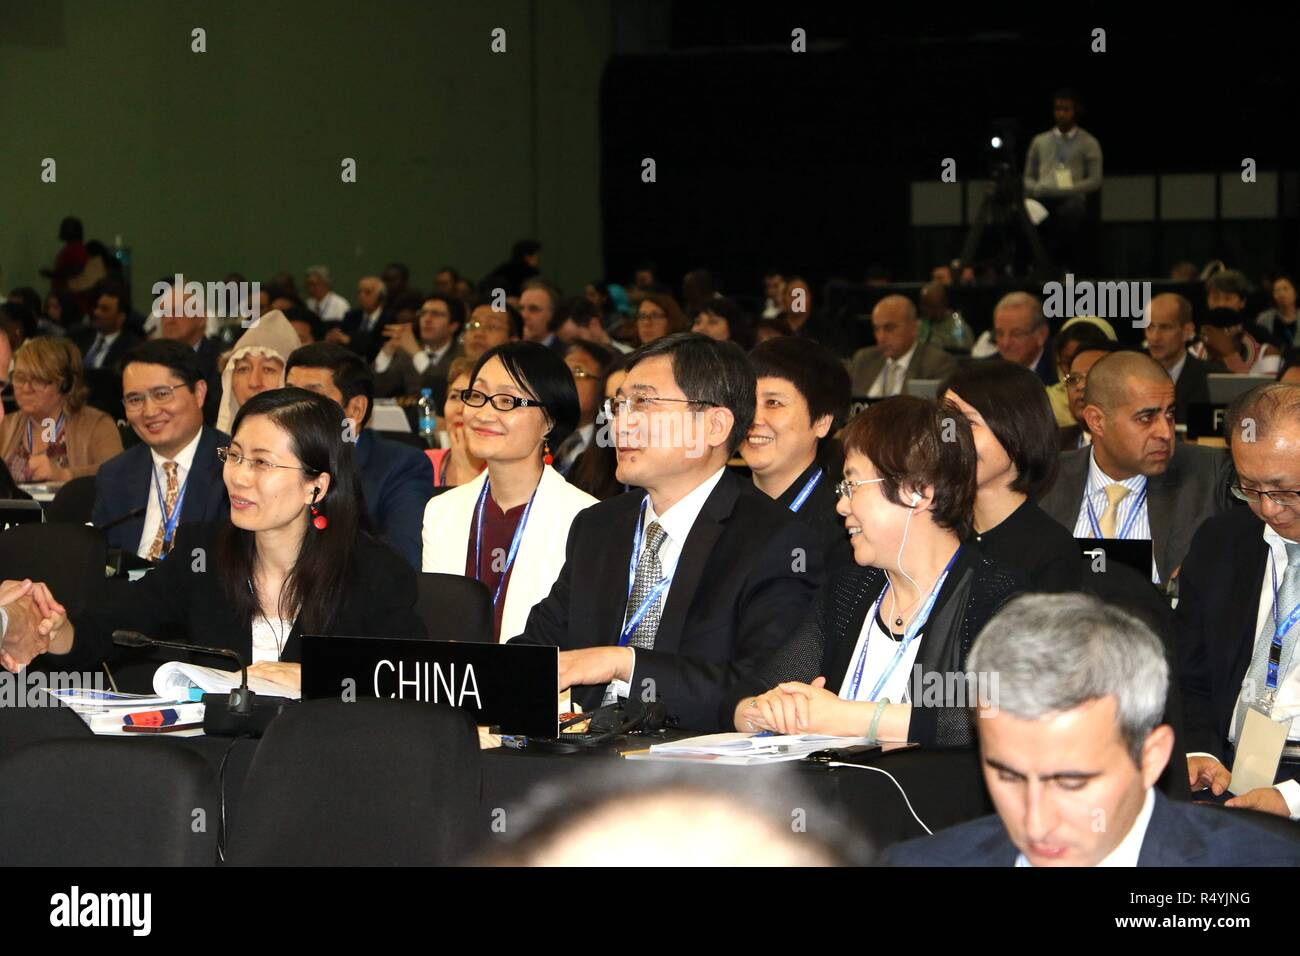 Port Louis, Mauritius. 28th Nov, 2018. Chinese Vice Minister of Culture and Tourism Zhang Xu (C) attends the 13th session of the UNESCO Intergovernmental Committee for the Safeguarding of the Intangible Cultural Heritage in Port Louis, Mauritius, Nov. 28, 2018. The United Nations Educational, Scientific and Cultural Organization (UNESCO) inscribed on Wednesday China's Lum medicinal bathing of Sowa Rigpa on the Representative List of the Intangible Cultural Heritage of Humanity. Credit: Brahms/Xinhua/Alamy Live News - Stock Image